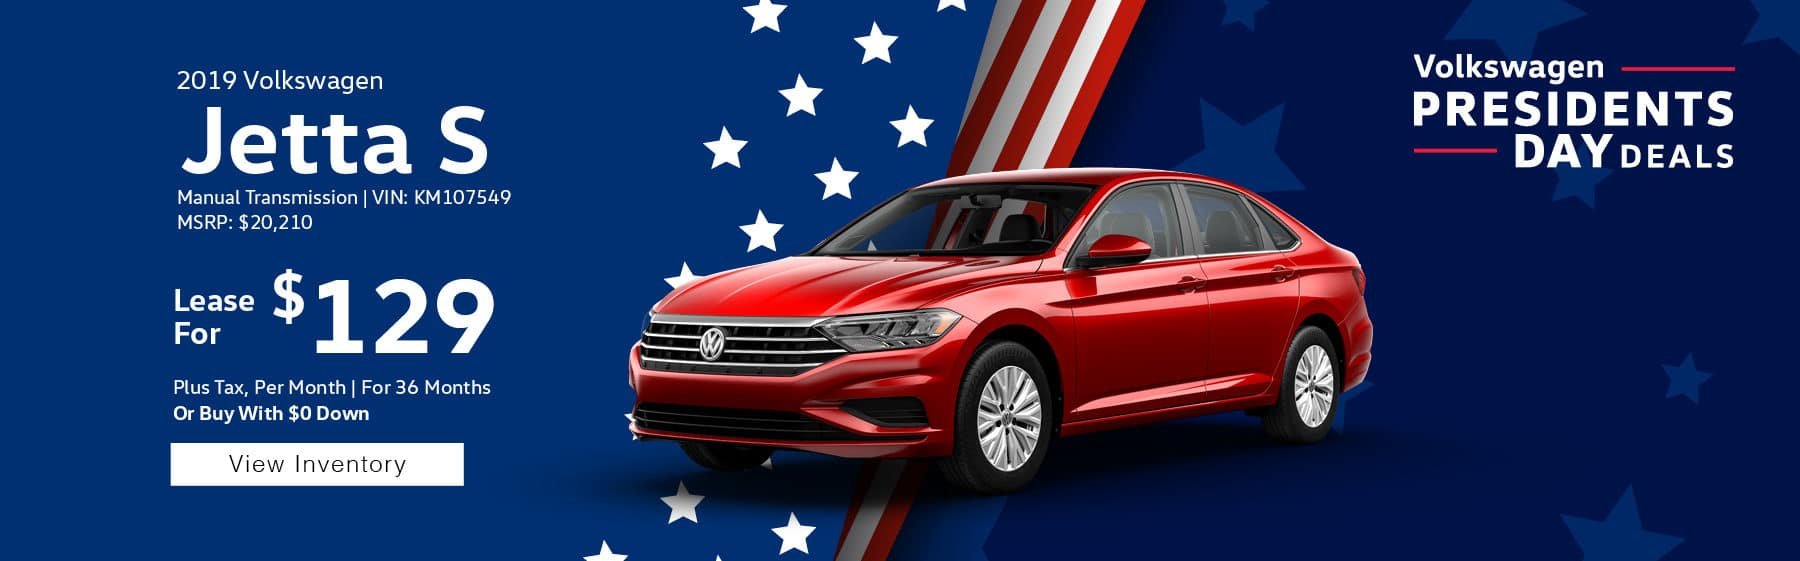 Lease the 2019 Volkswagen Jetta S for $129 plus tax for 36 months. $1,895 Down payment required.